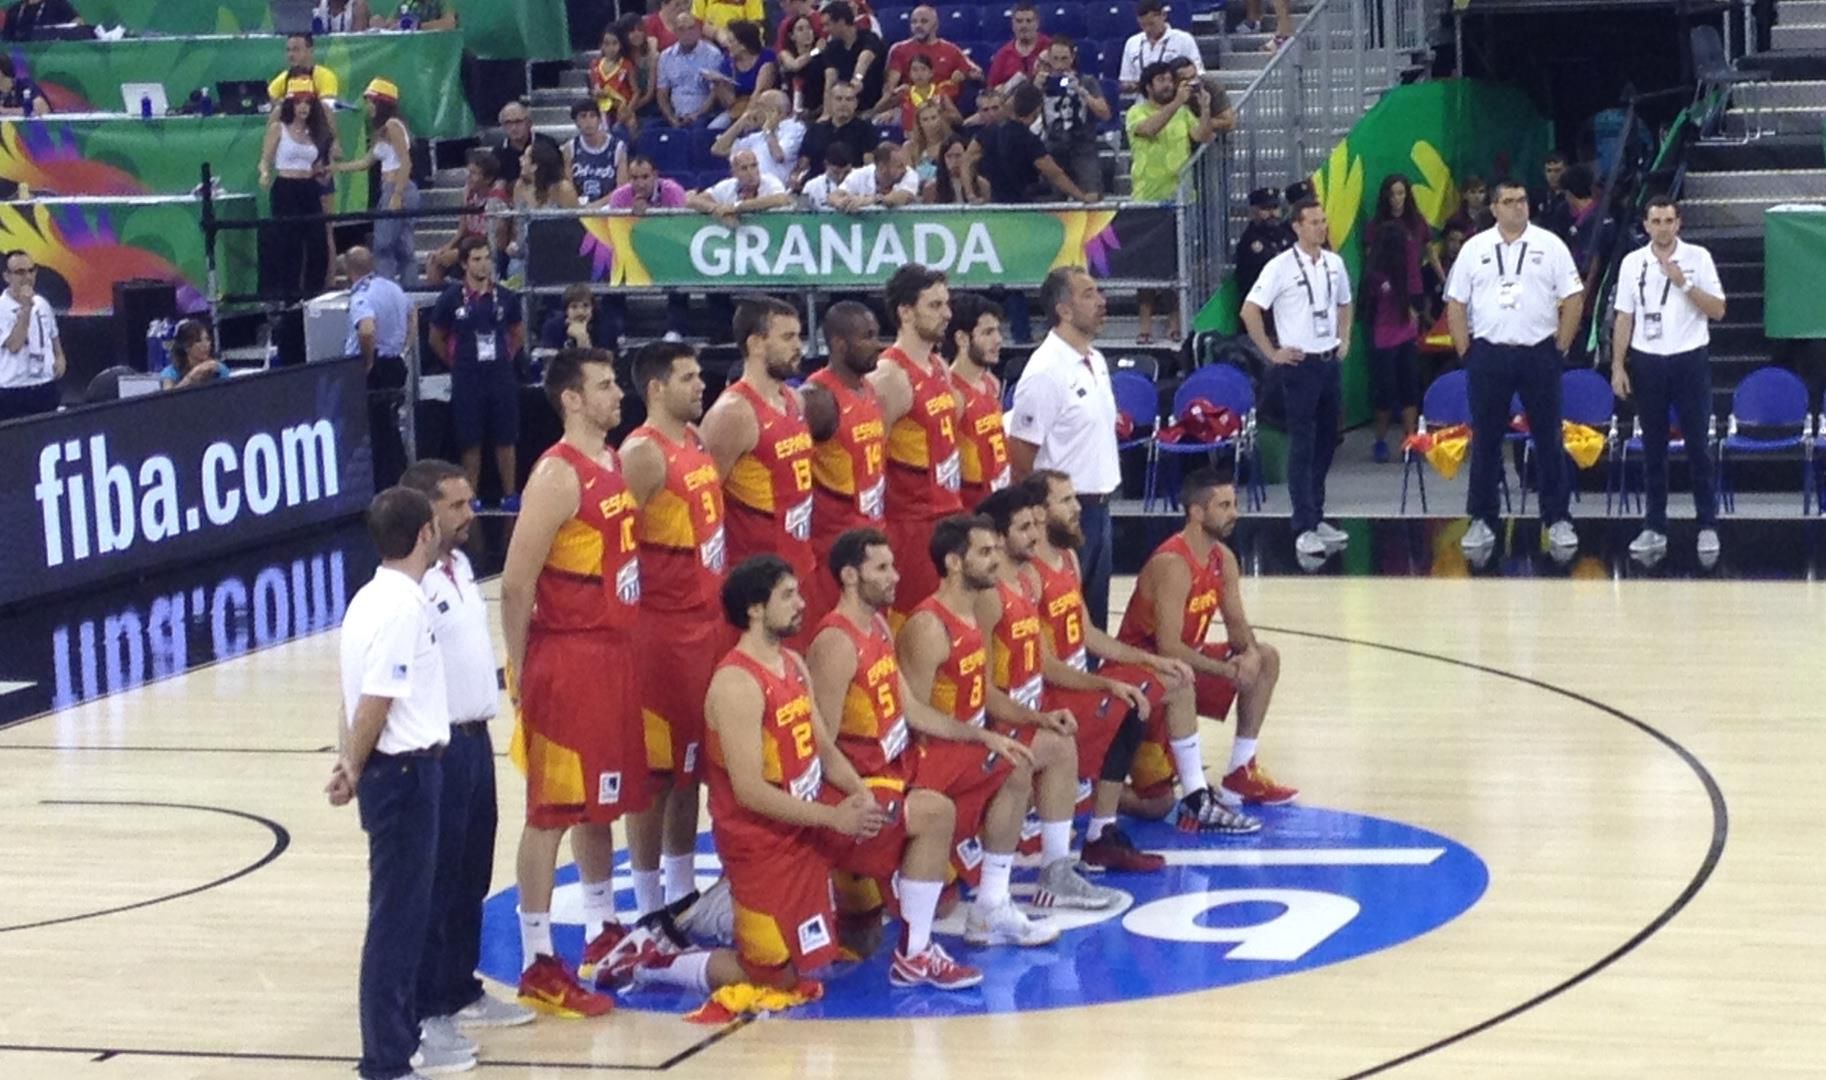 Spain in 2014 FIBA Basketball World Cup - Where Champions Play